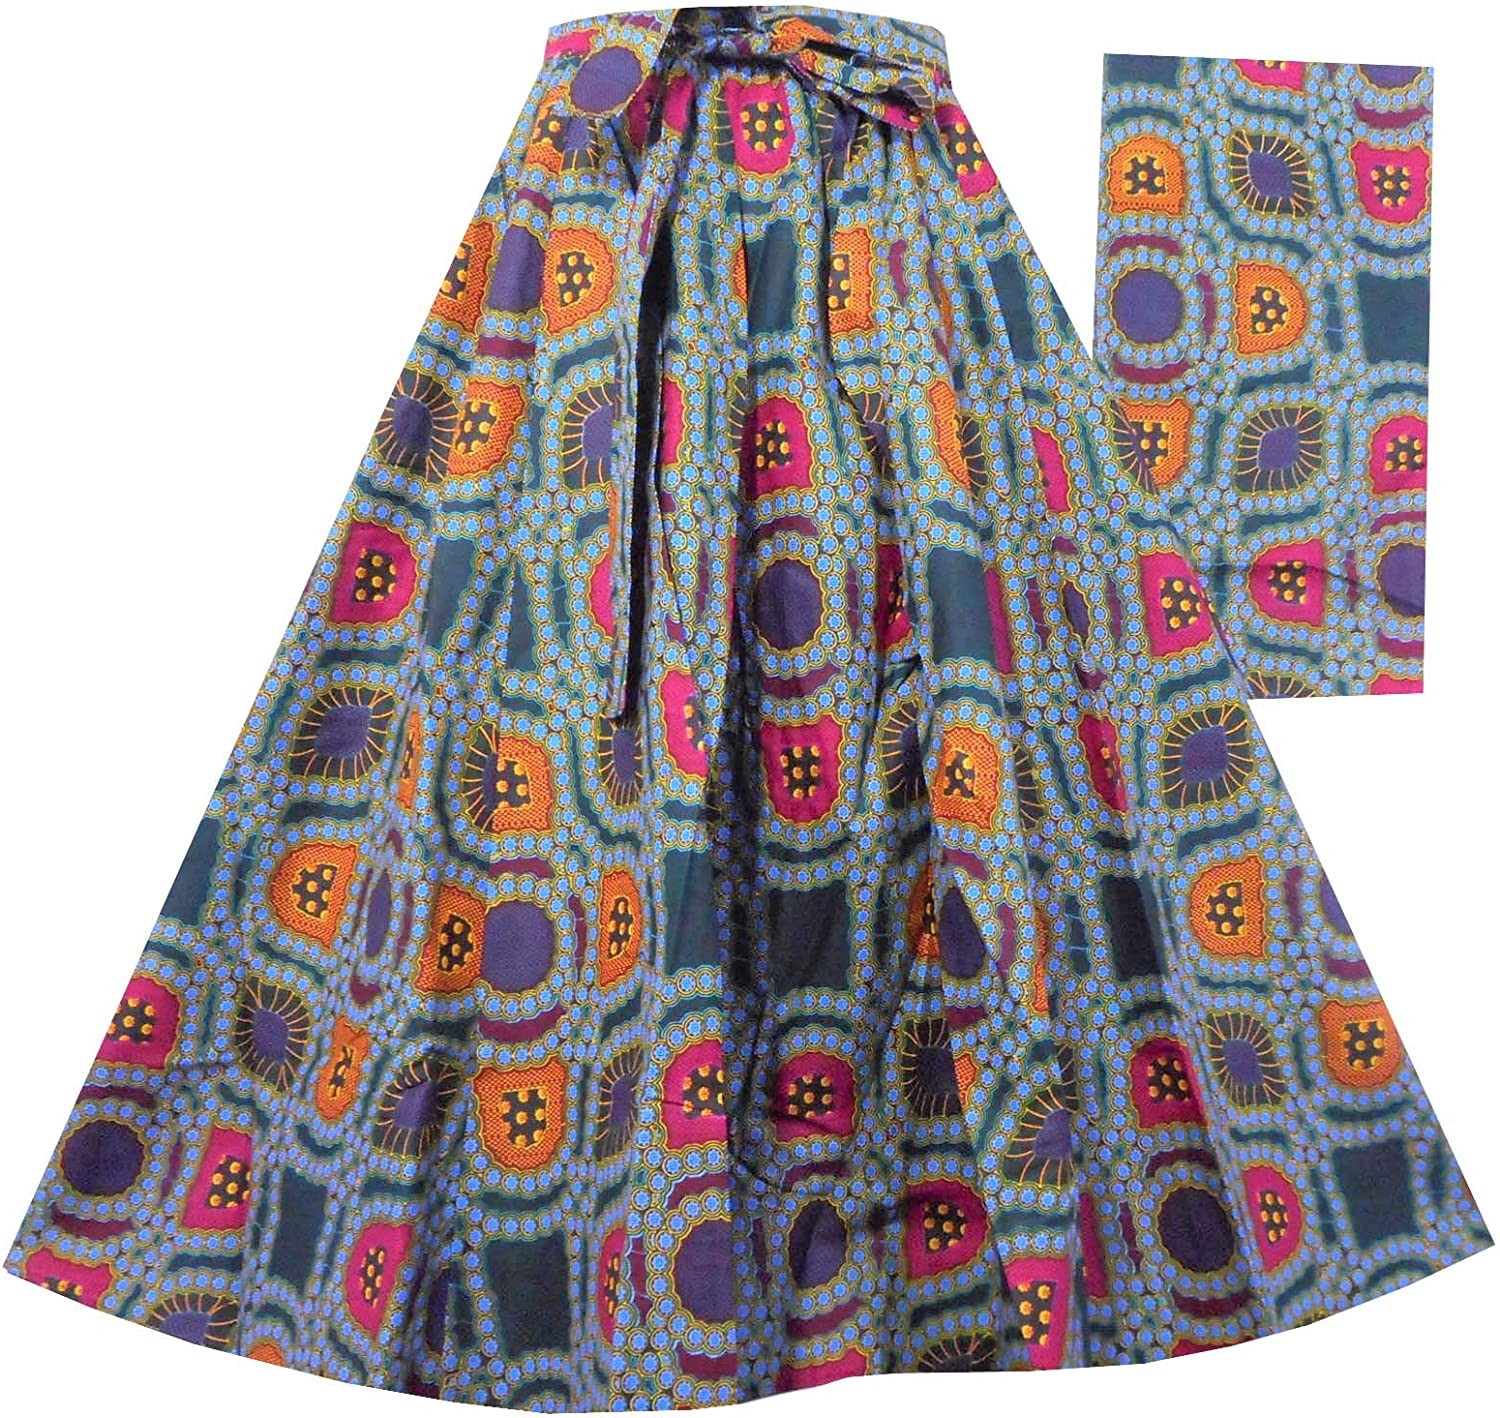 Decoraapparel African Wax Skirts Long Dashiki Maxi Cotton Skirts One Size